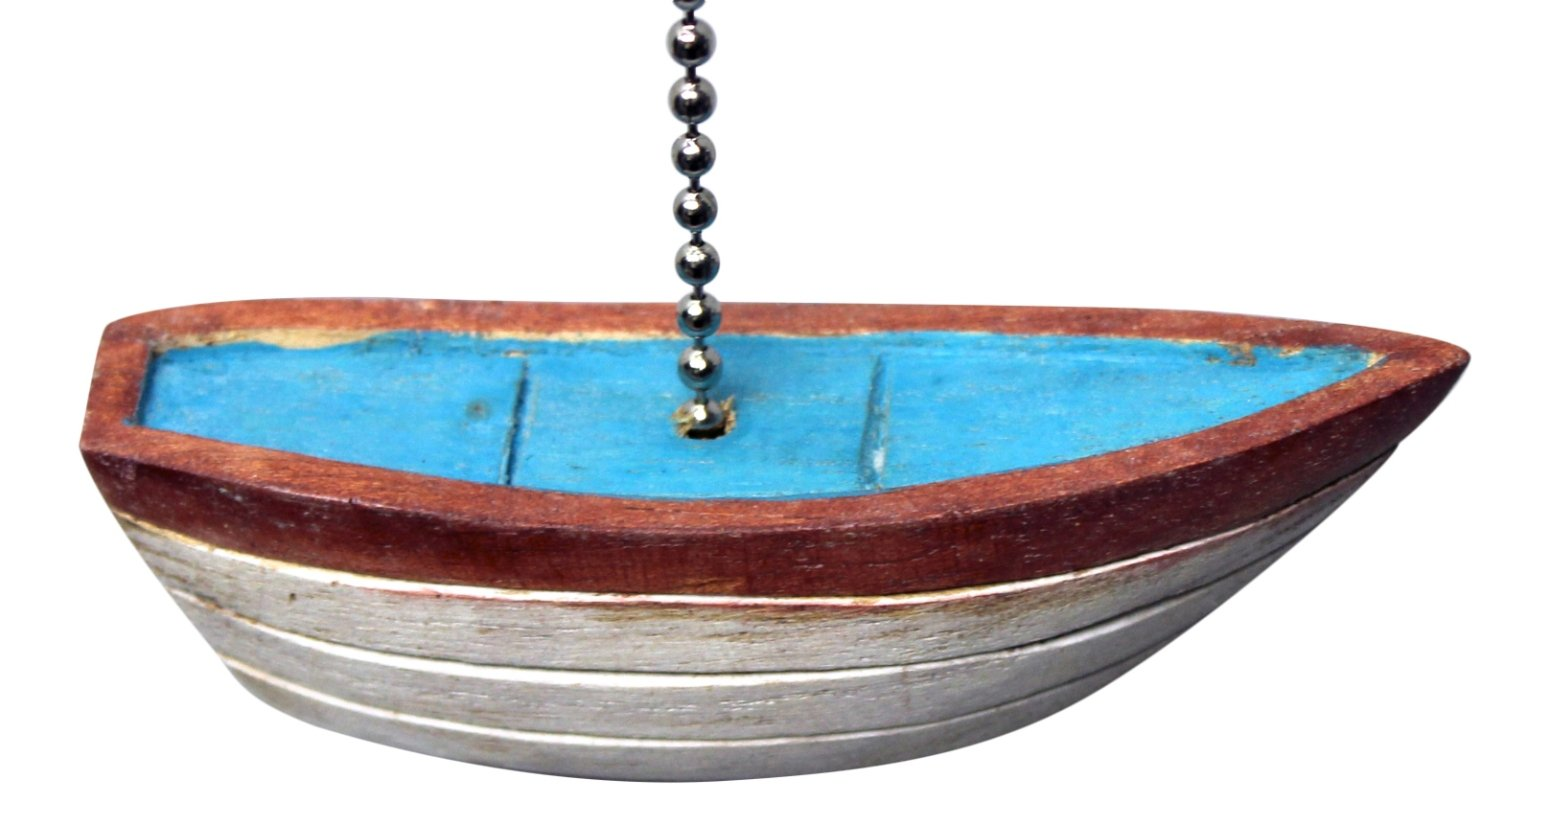 Blue and White Row Boat Hand Carved Wood Ceiling Fan Light Pull